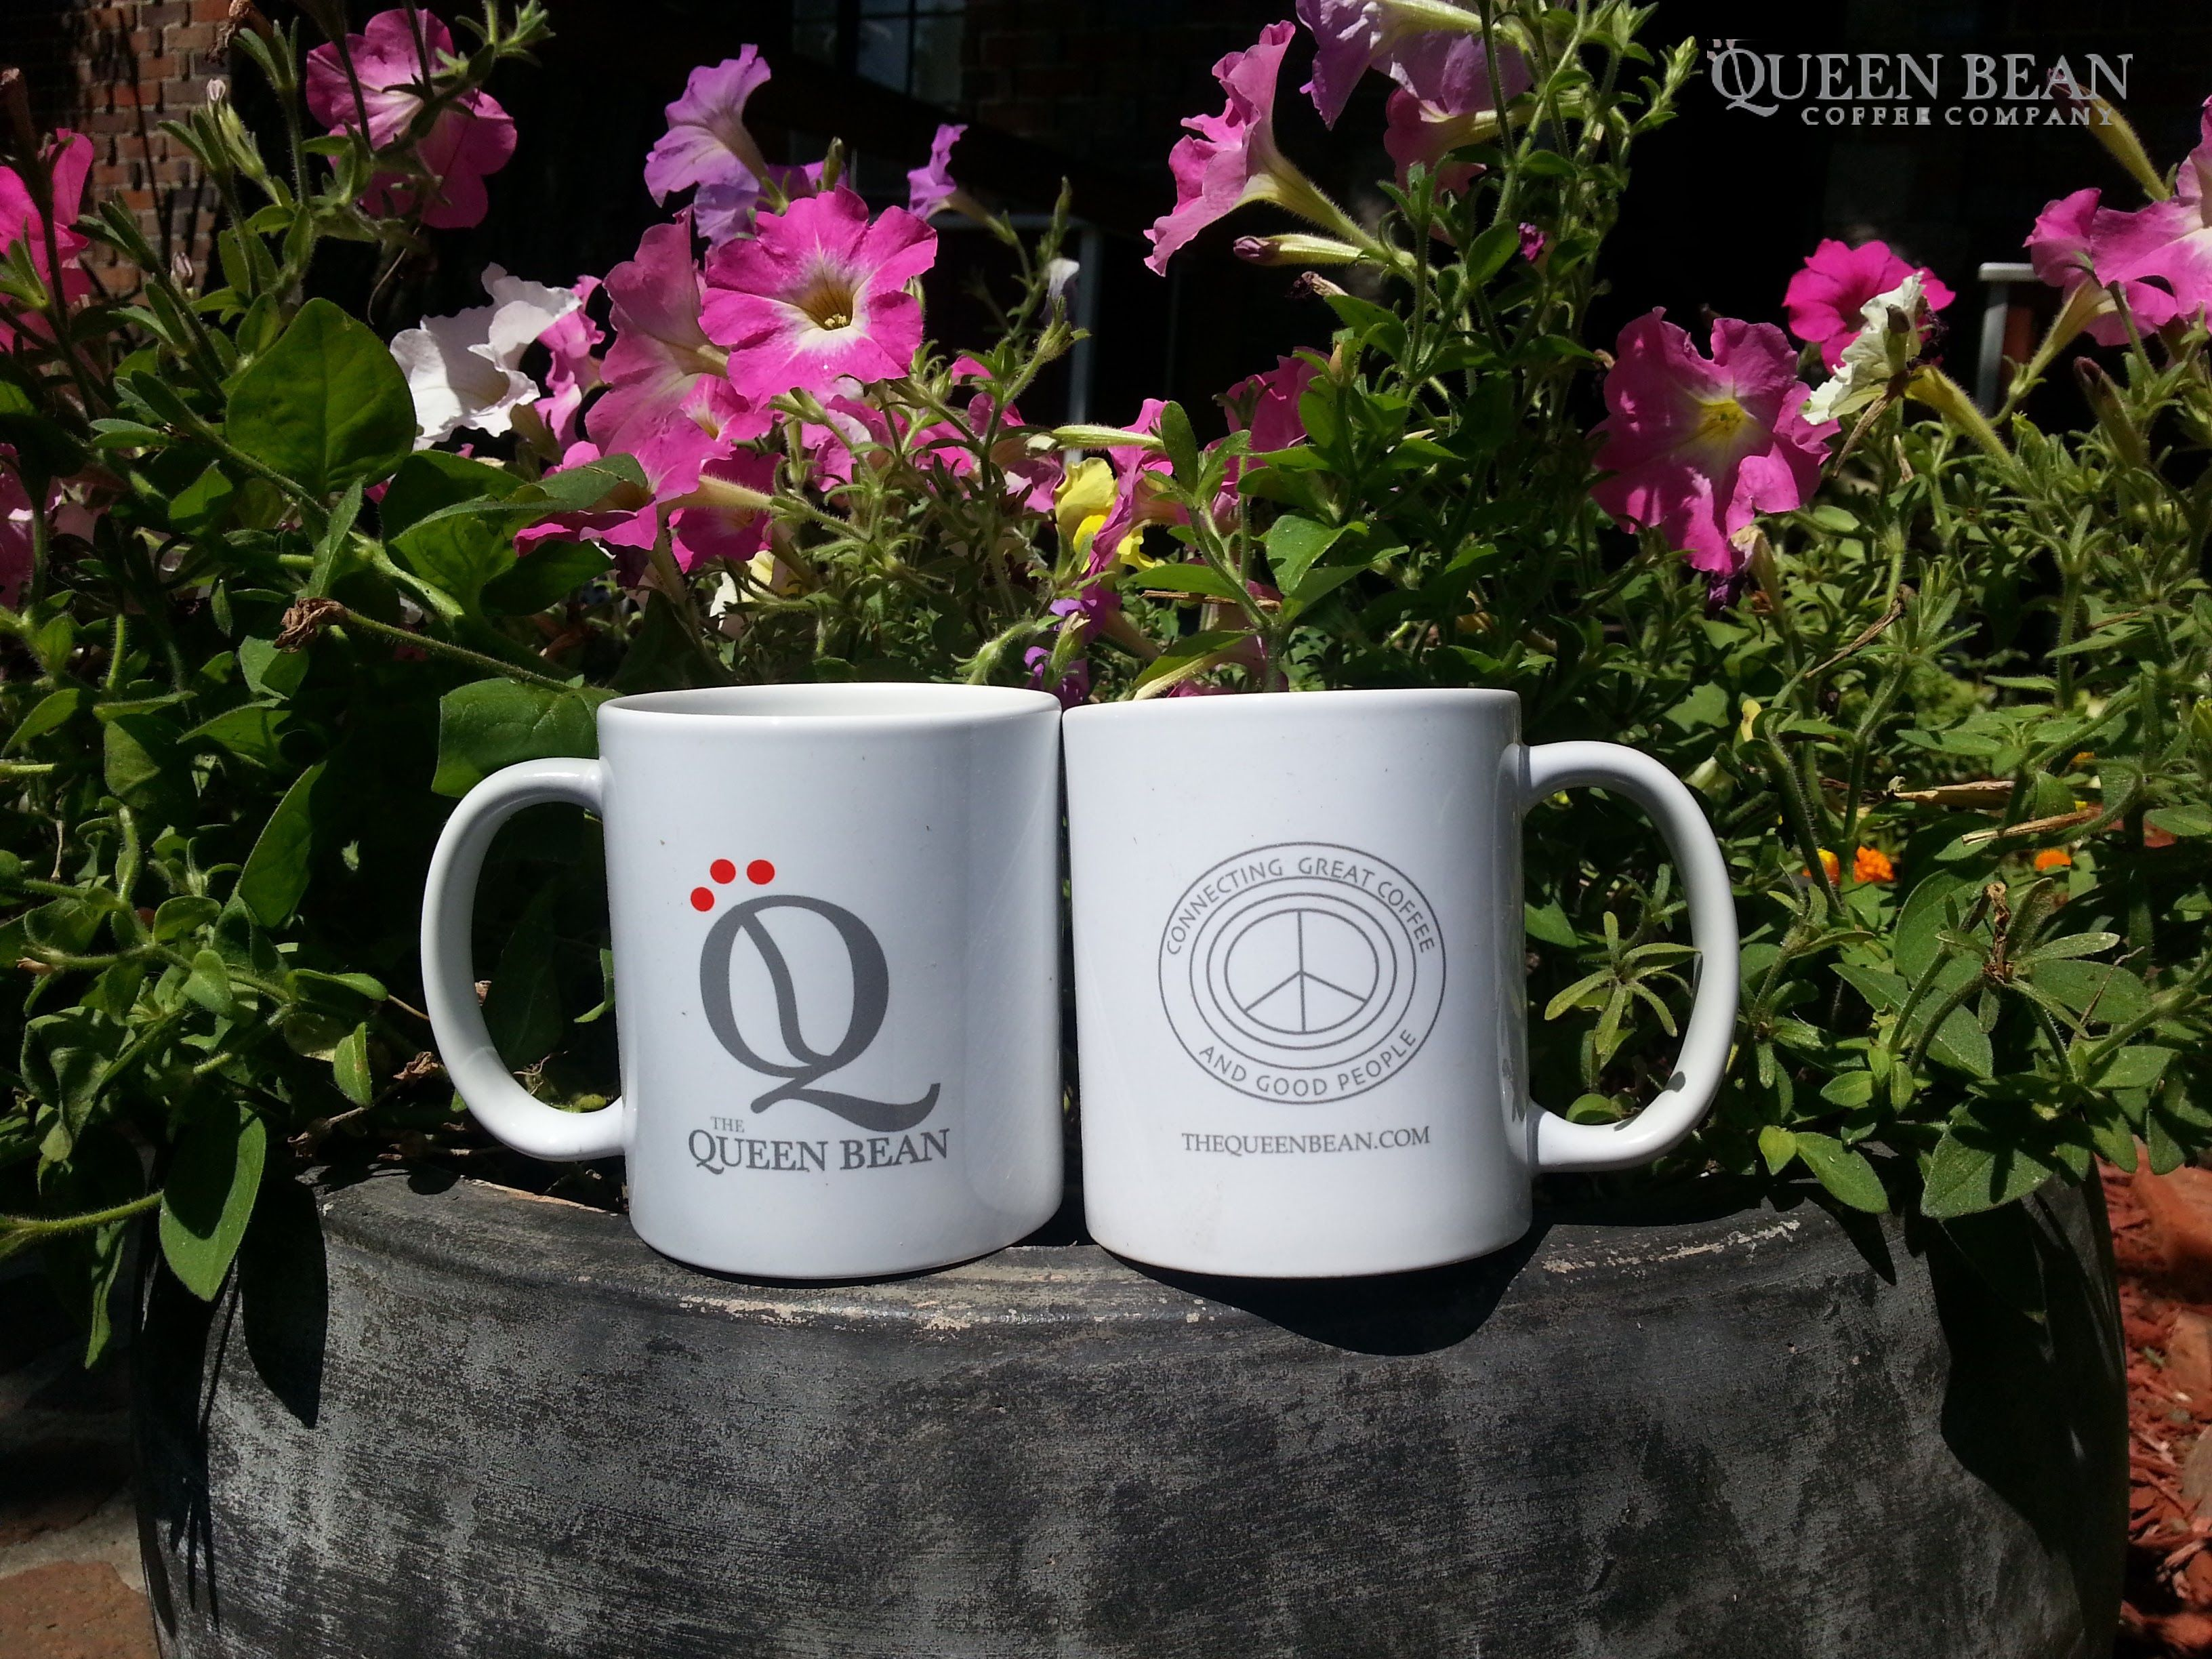 Qbmugs In The Garden Thequeenbean Connecting Good People With Great Coffee Millscoffeeroasting Beans Coffee Beans Coffee Company